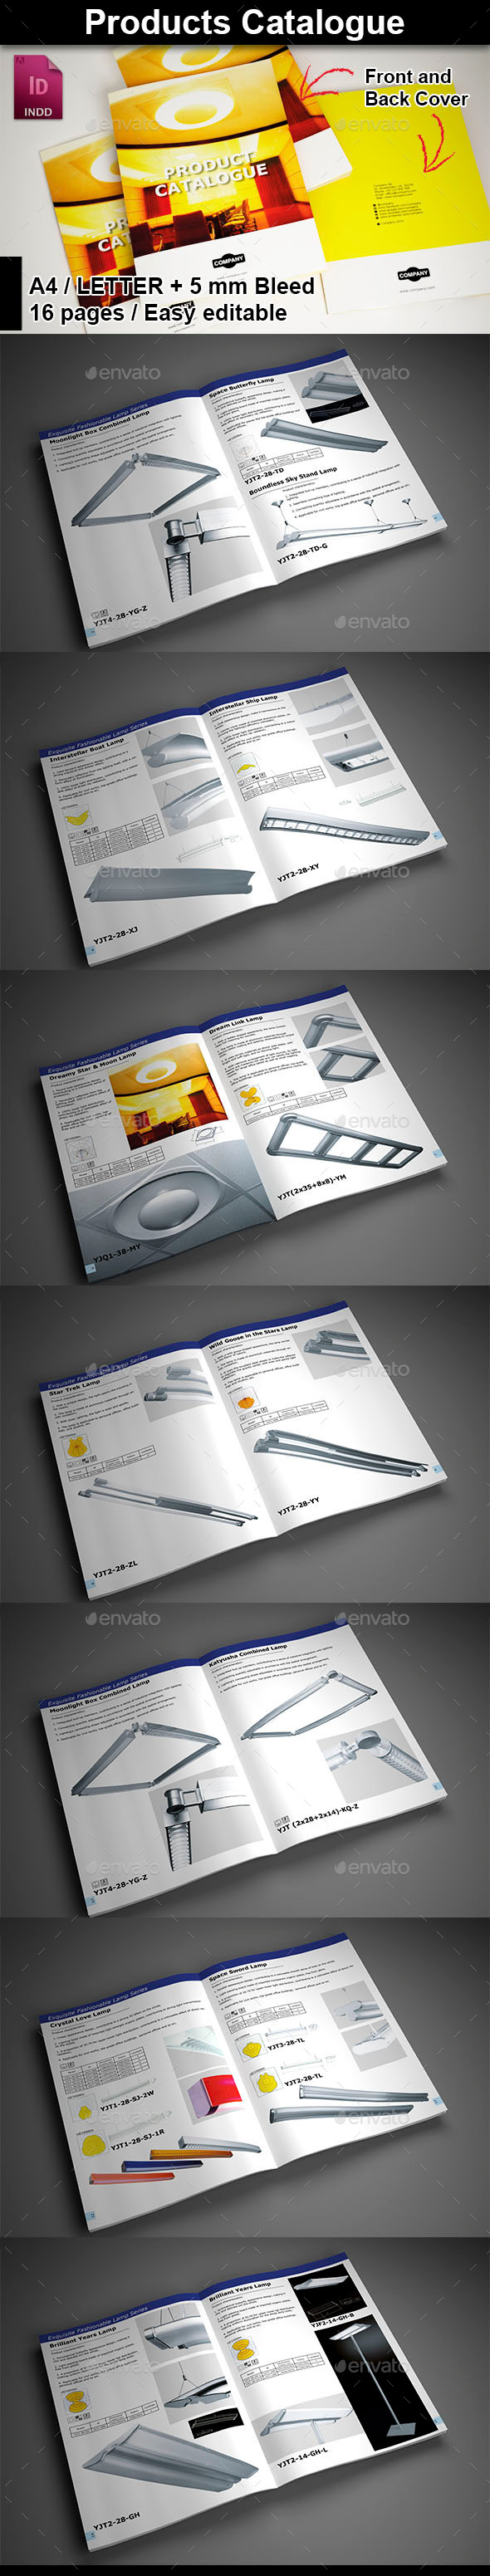 GraphicRiver Products Catalogue 9642345